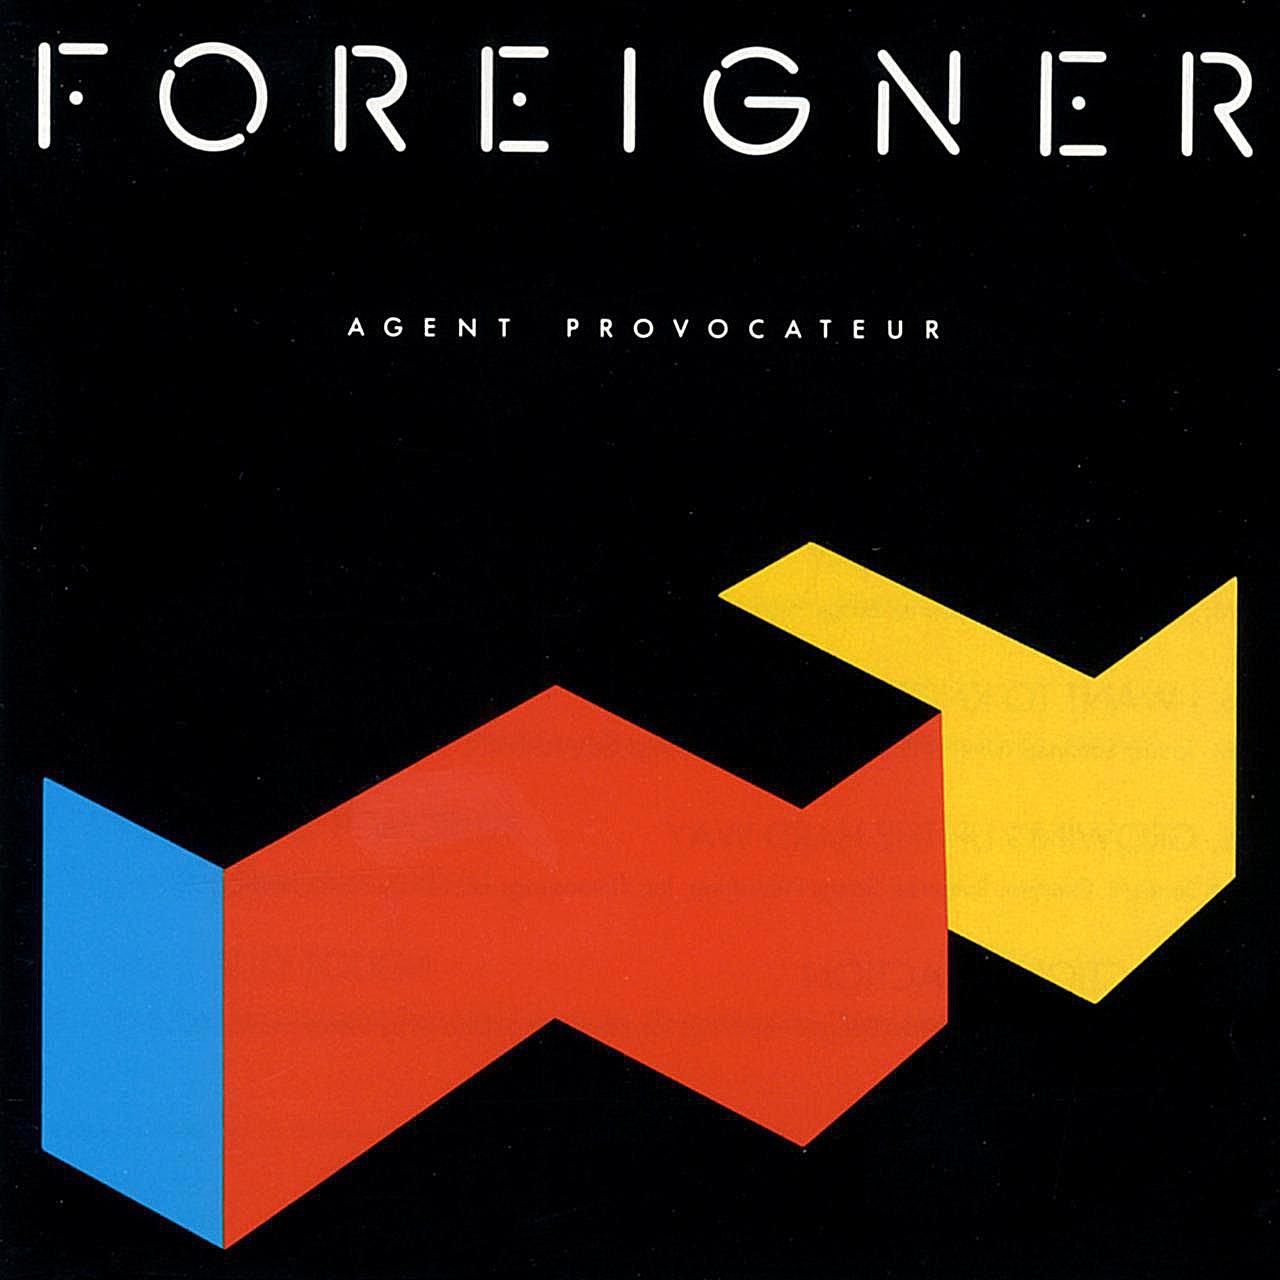 By 1984's 'Agent Provocateur,' Foreigner had all but abandoned its hard rock guitar sound.